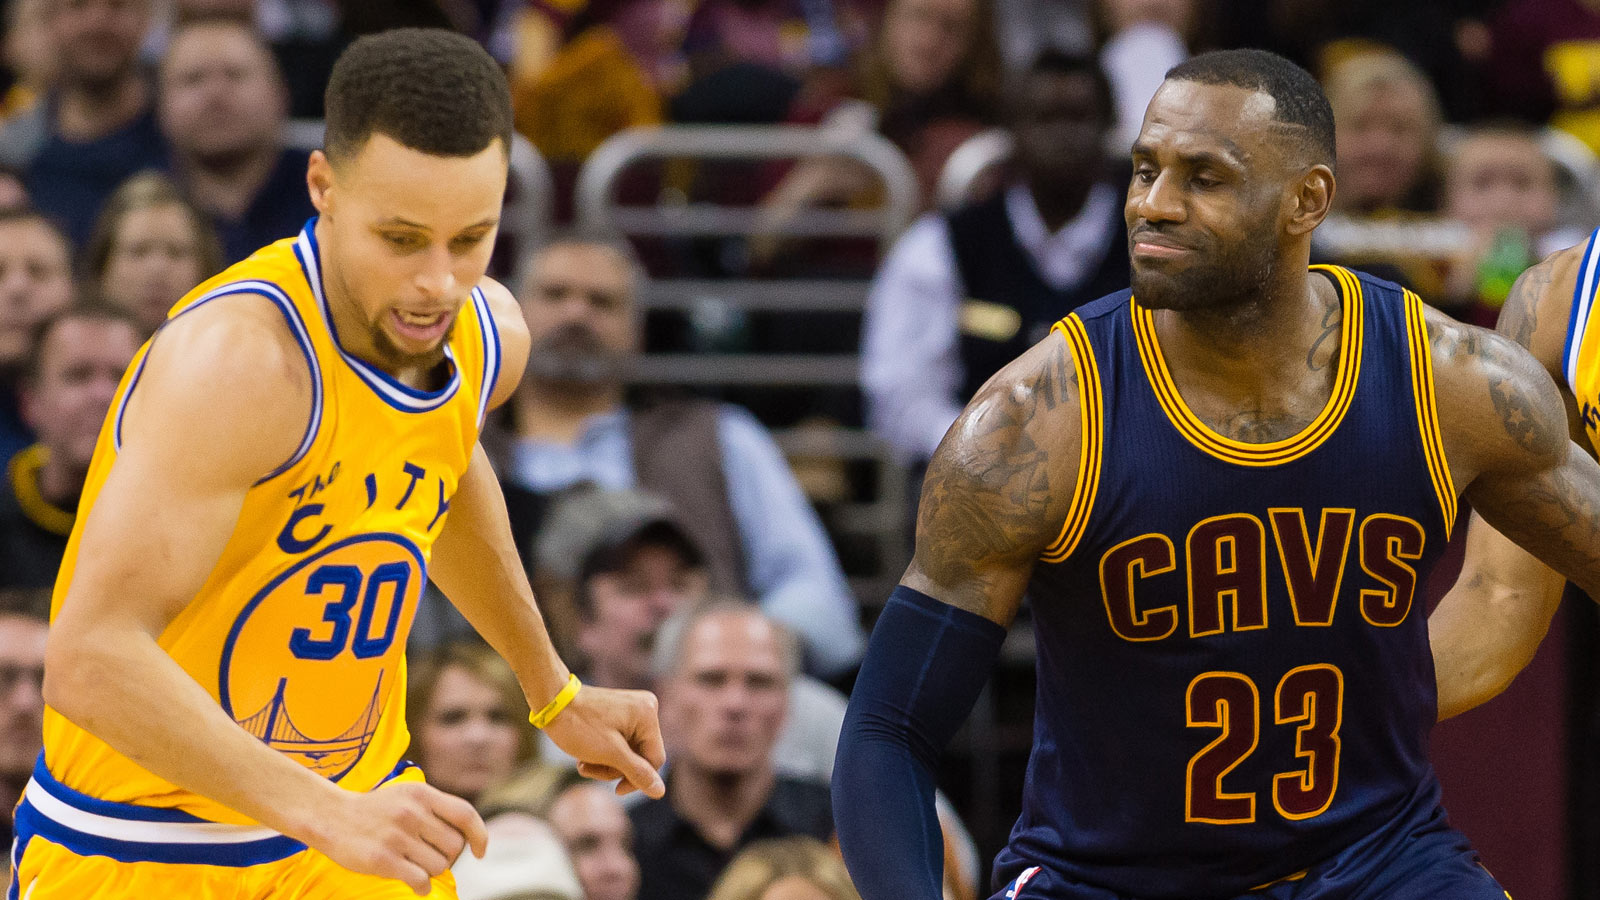 011916-NBA-Cleveland-Cavaliers-Stephen-Curry-LeBron-James-PI2-JW